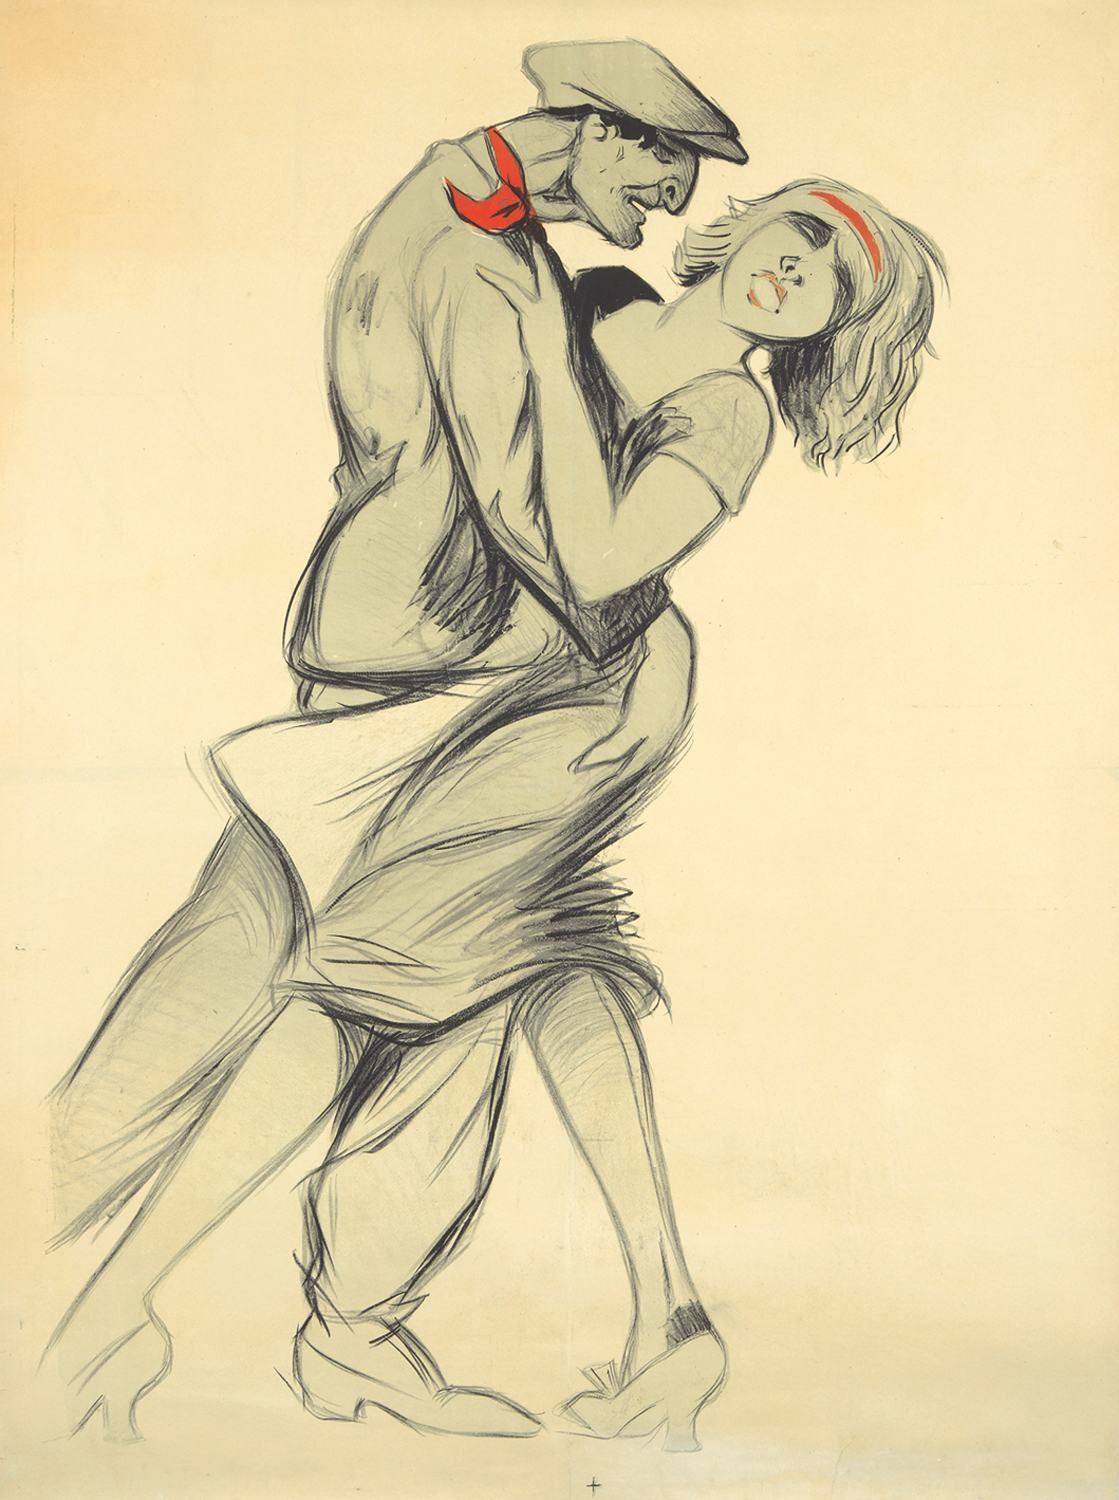 Mistinguett and Max Dearly by Adrien Barrere, ca. 1909